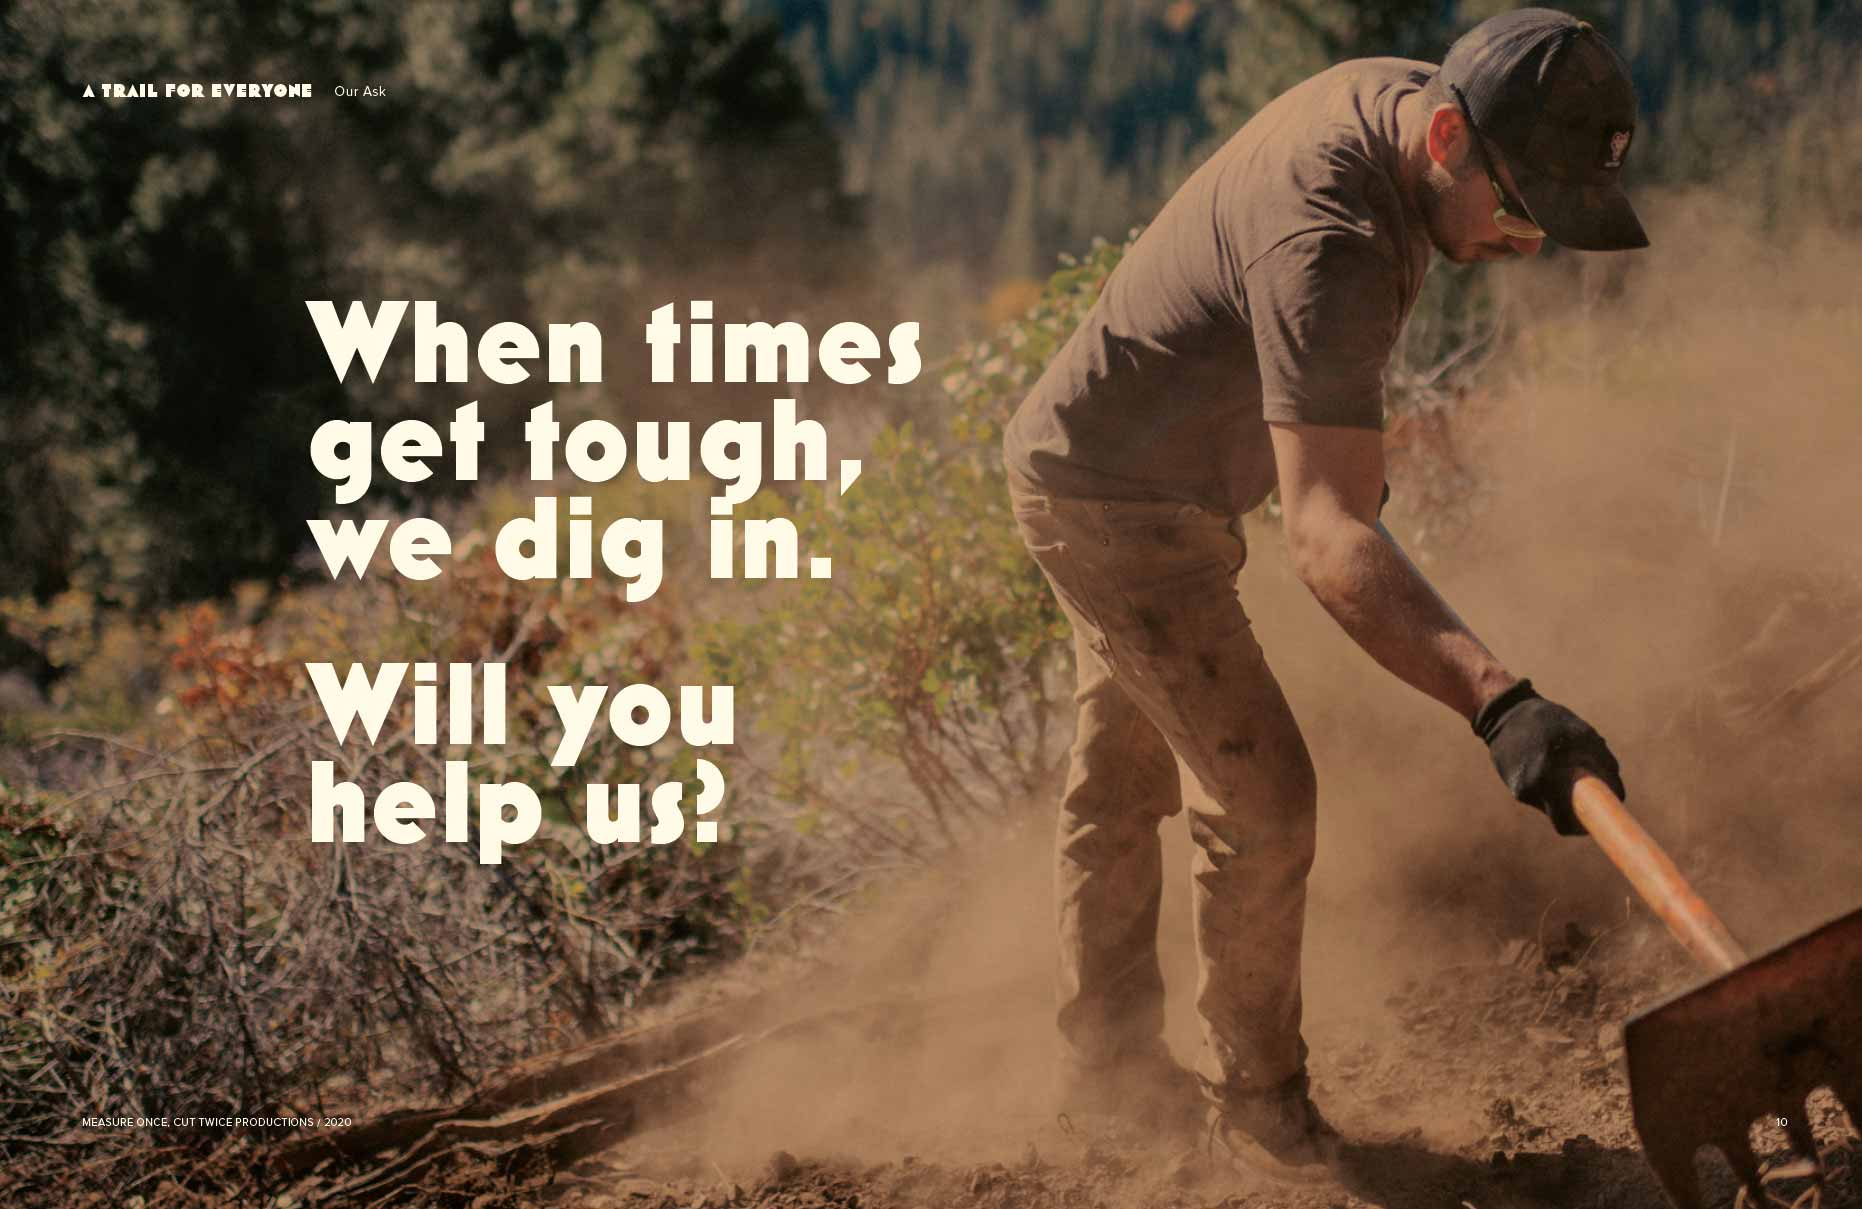 When times get tough, we dig in. Will you help us?